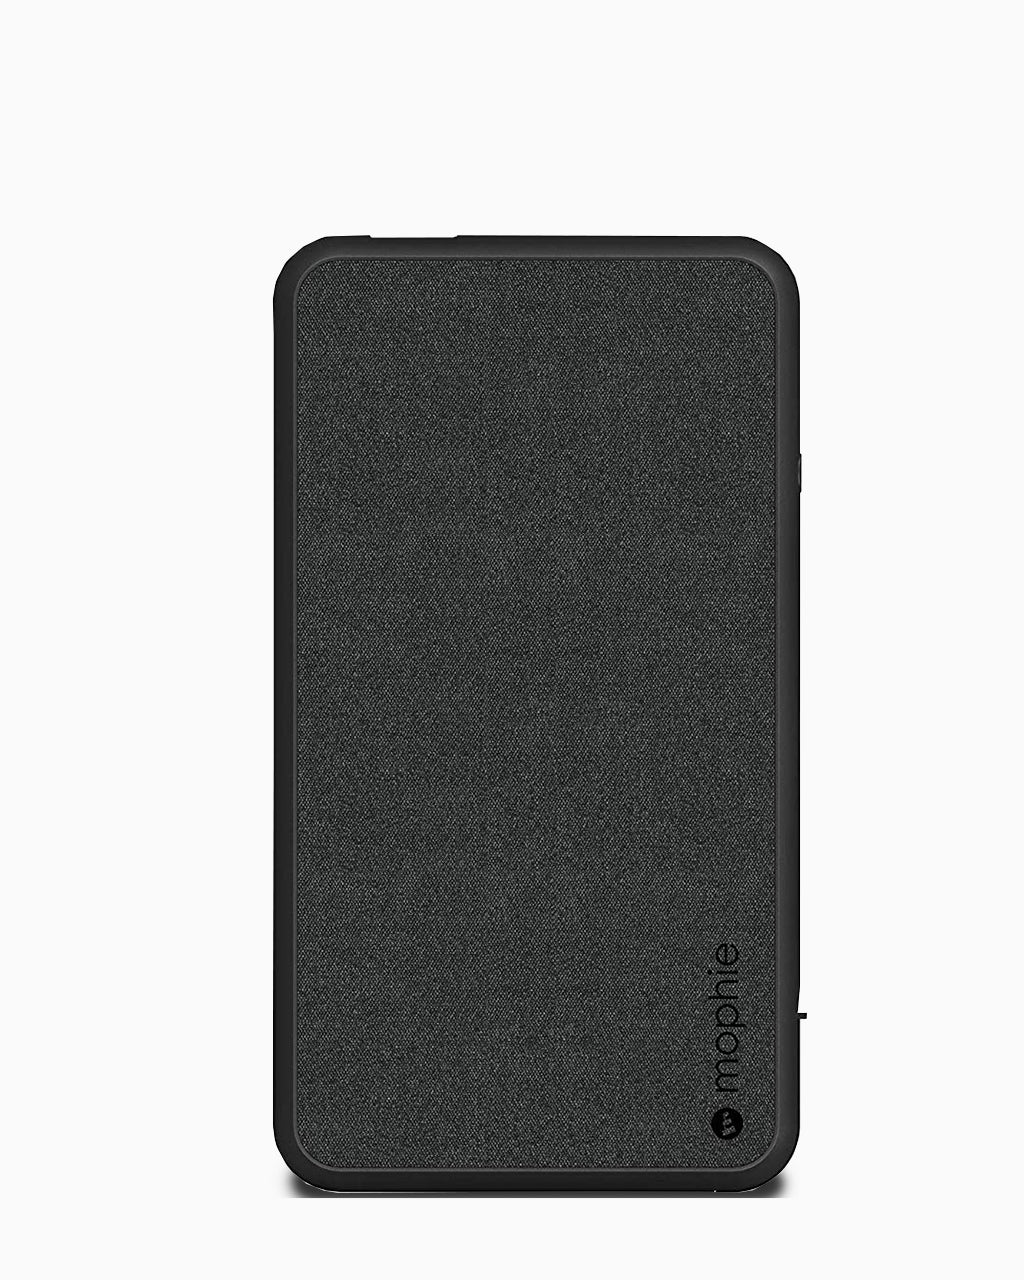 new arrival 3eb77 32478 mophie Powerstation Plus XL - Lightning Connector - 10,000mAh ...